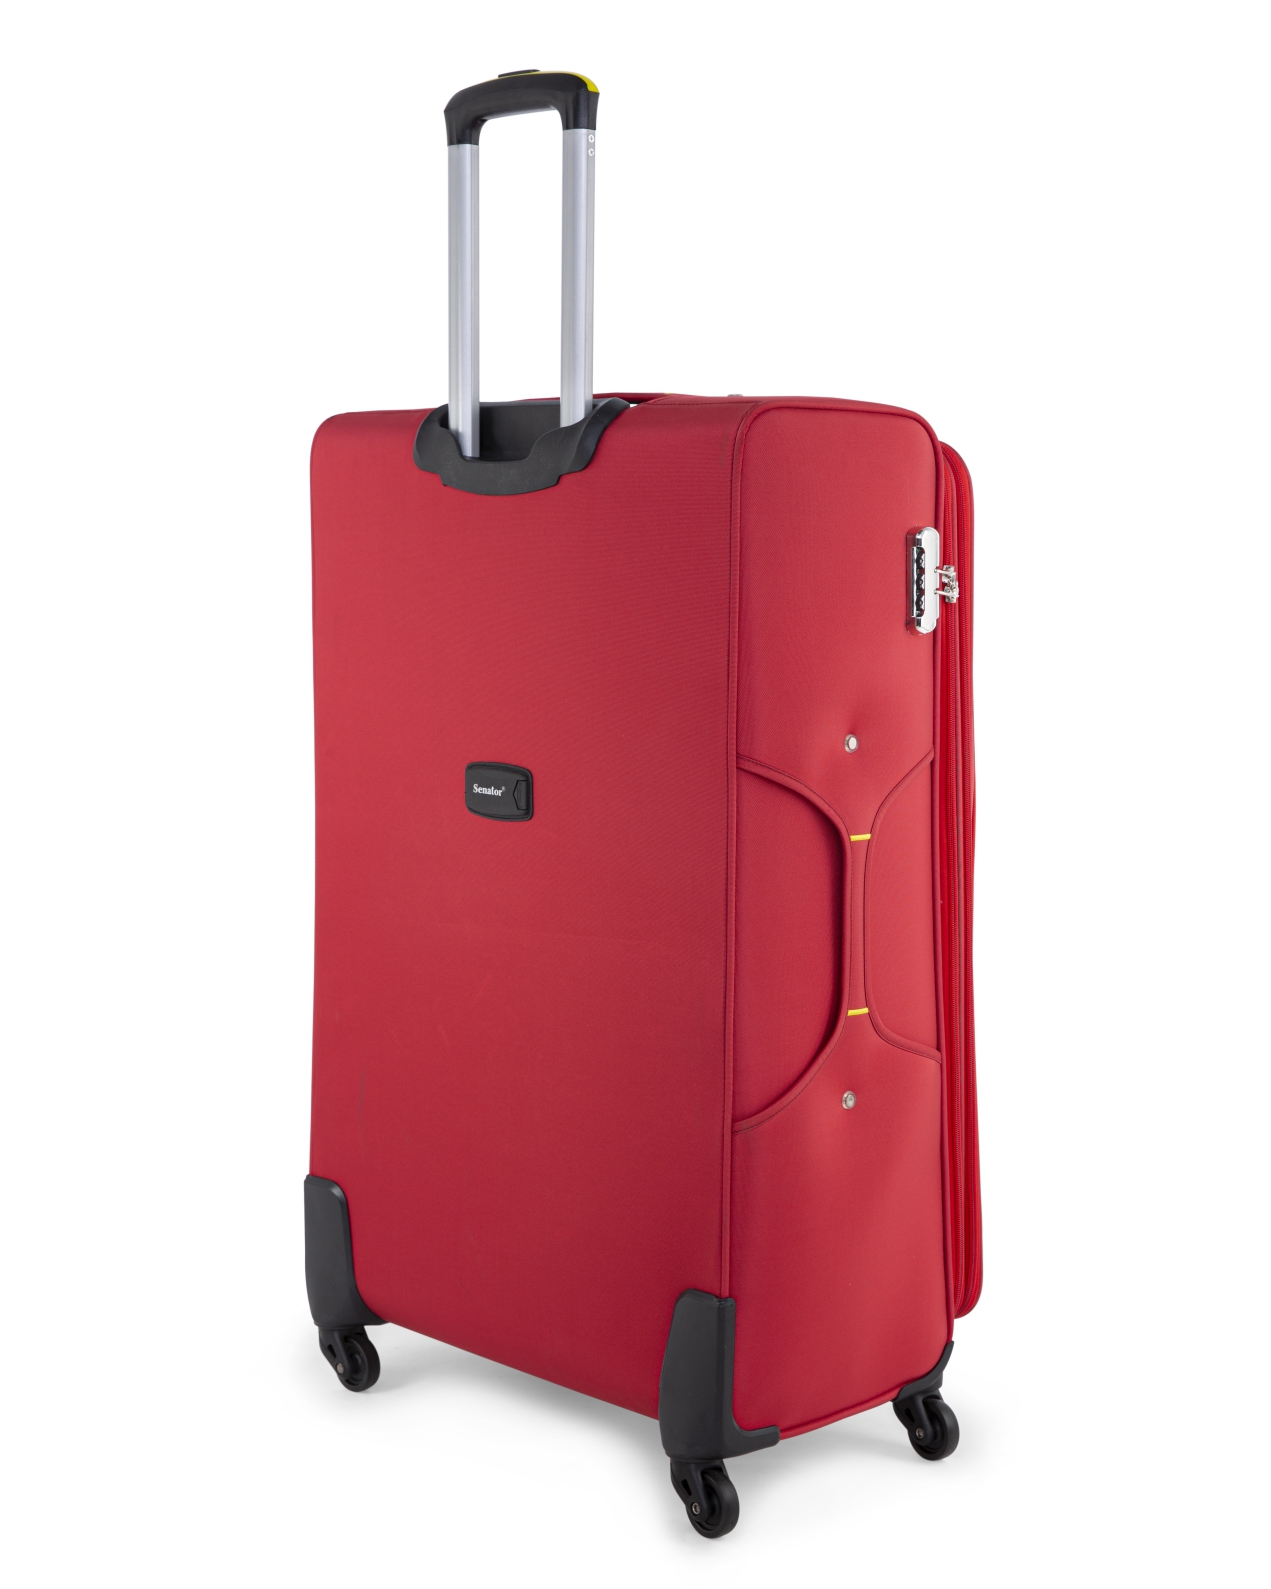 Senator Brand Softside 3 Piece Set of 4 Wheel Spinner Luggage Trolley in Red Color LL032-3_RED